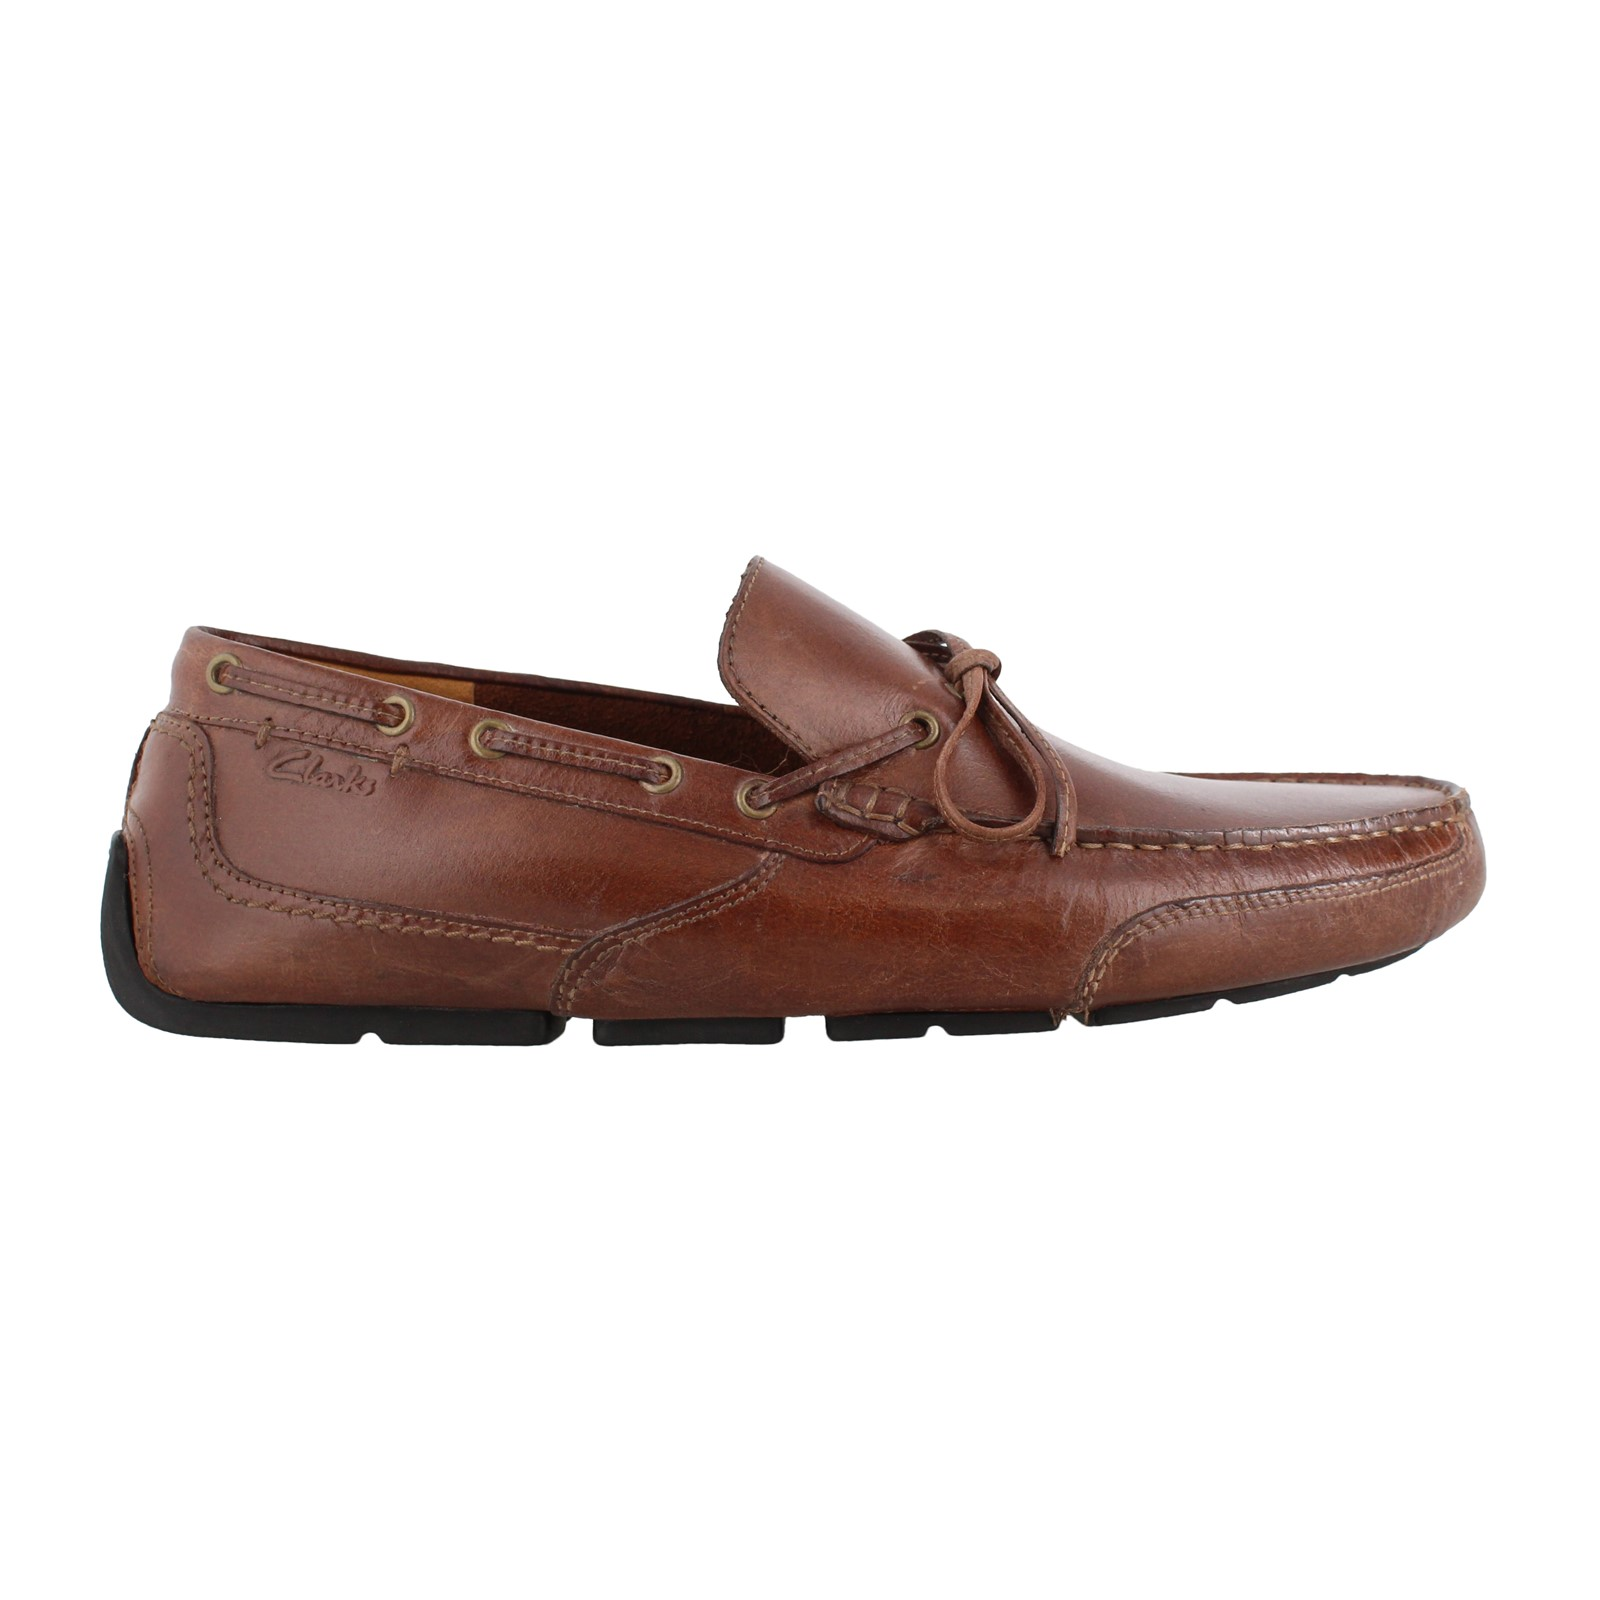 Men's Clarks, Ashmont Edge Slip on Loafers